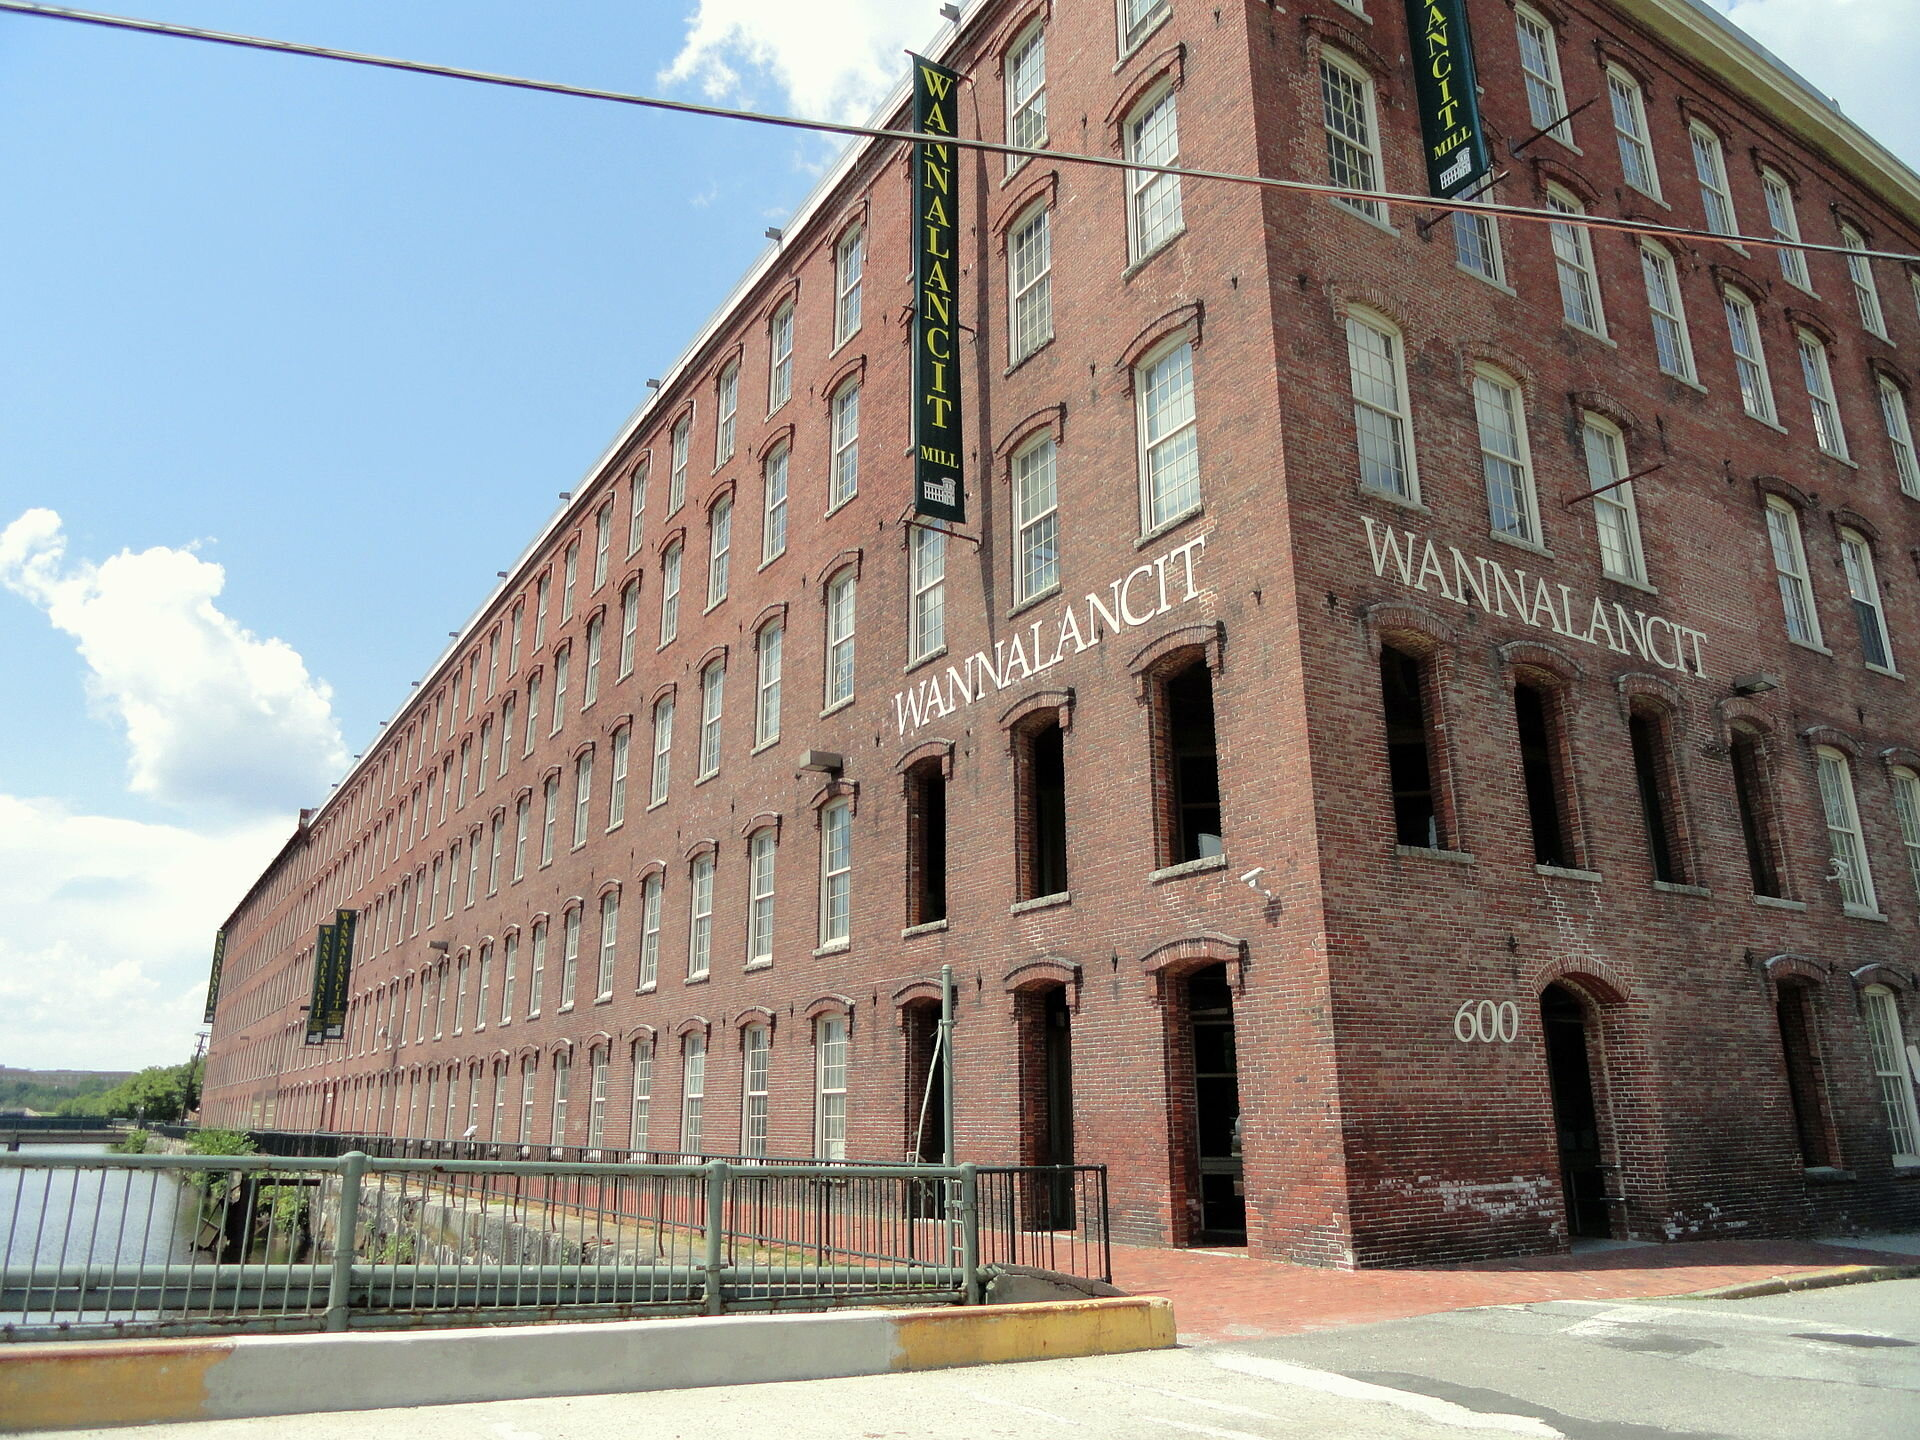 A 19th Century textile mill transformed into a UMass Lowell facility